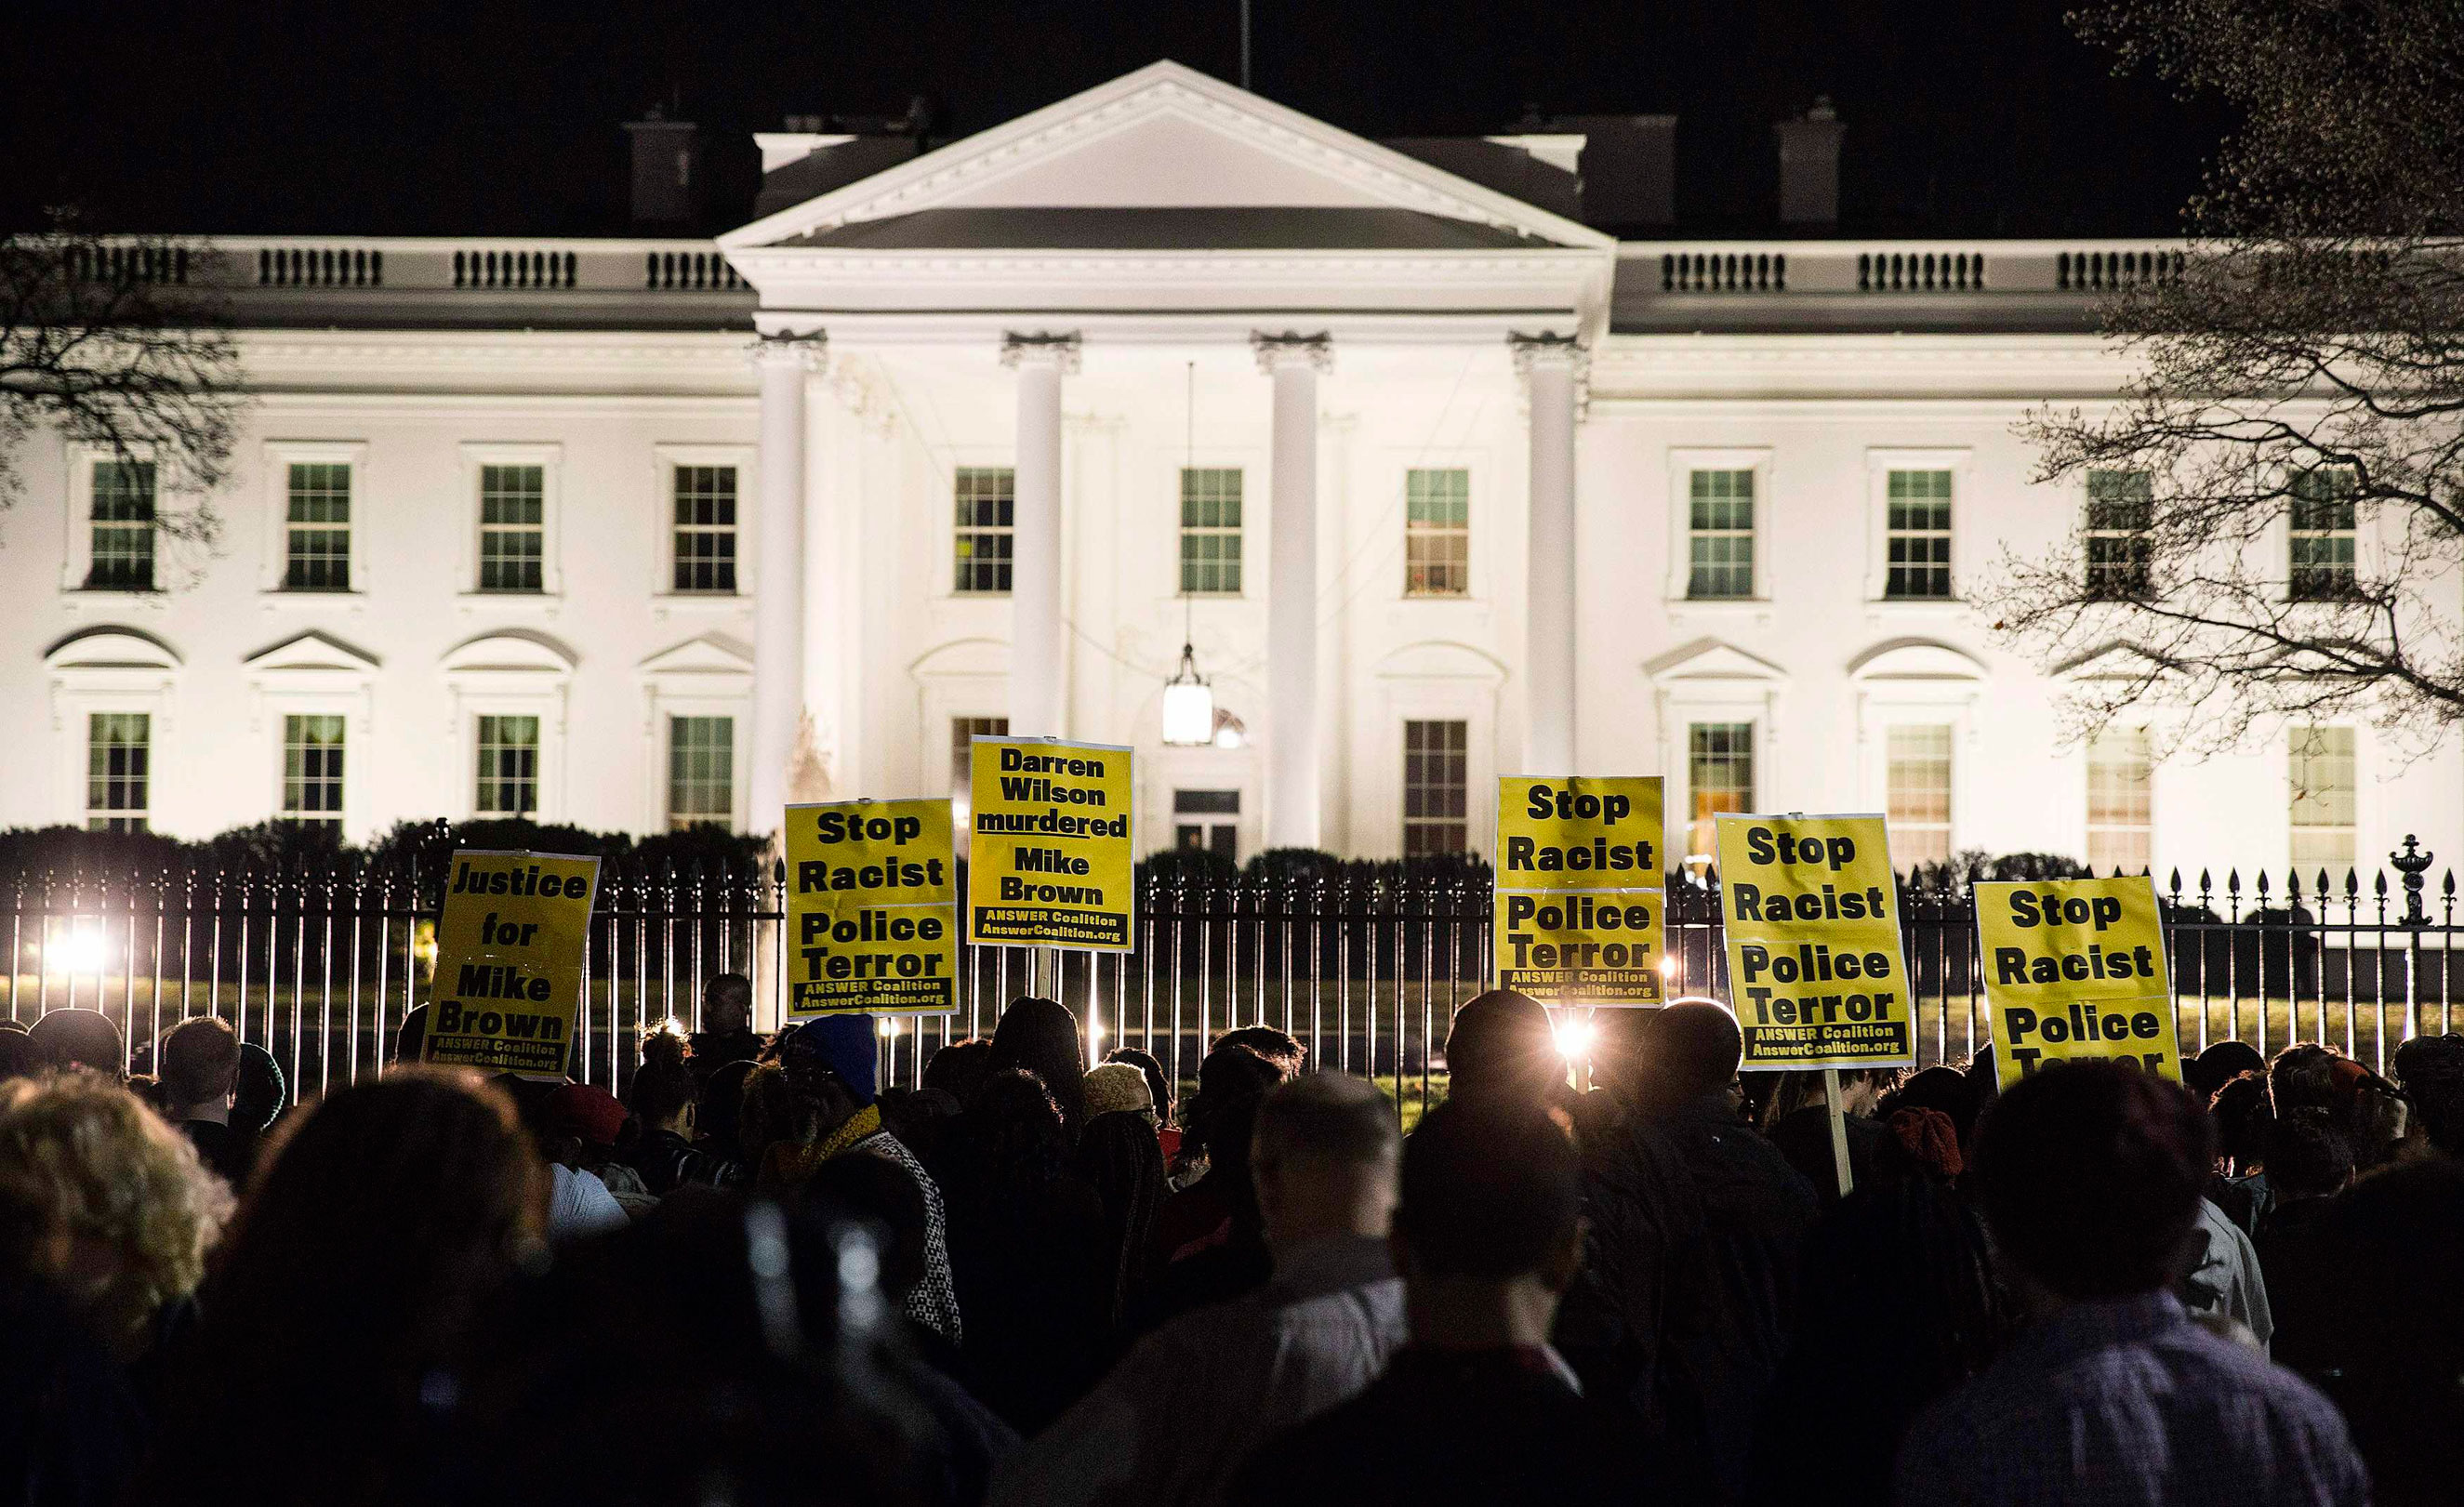 Protesters demonstrate in front of the White House in Washington, D.C., on Nov. 24, 2014.